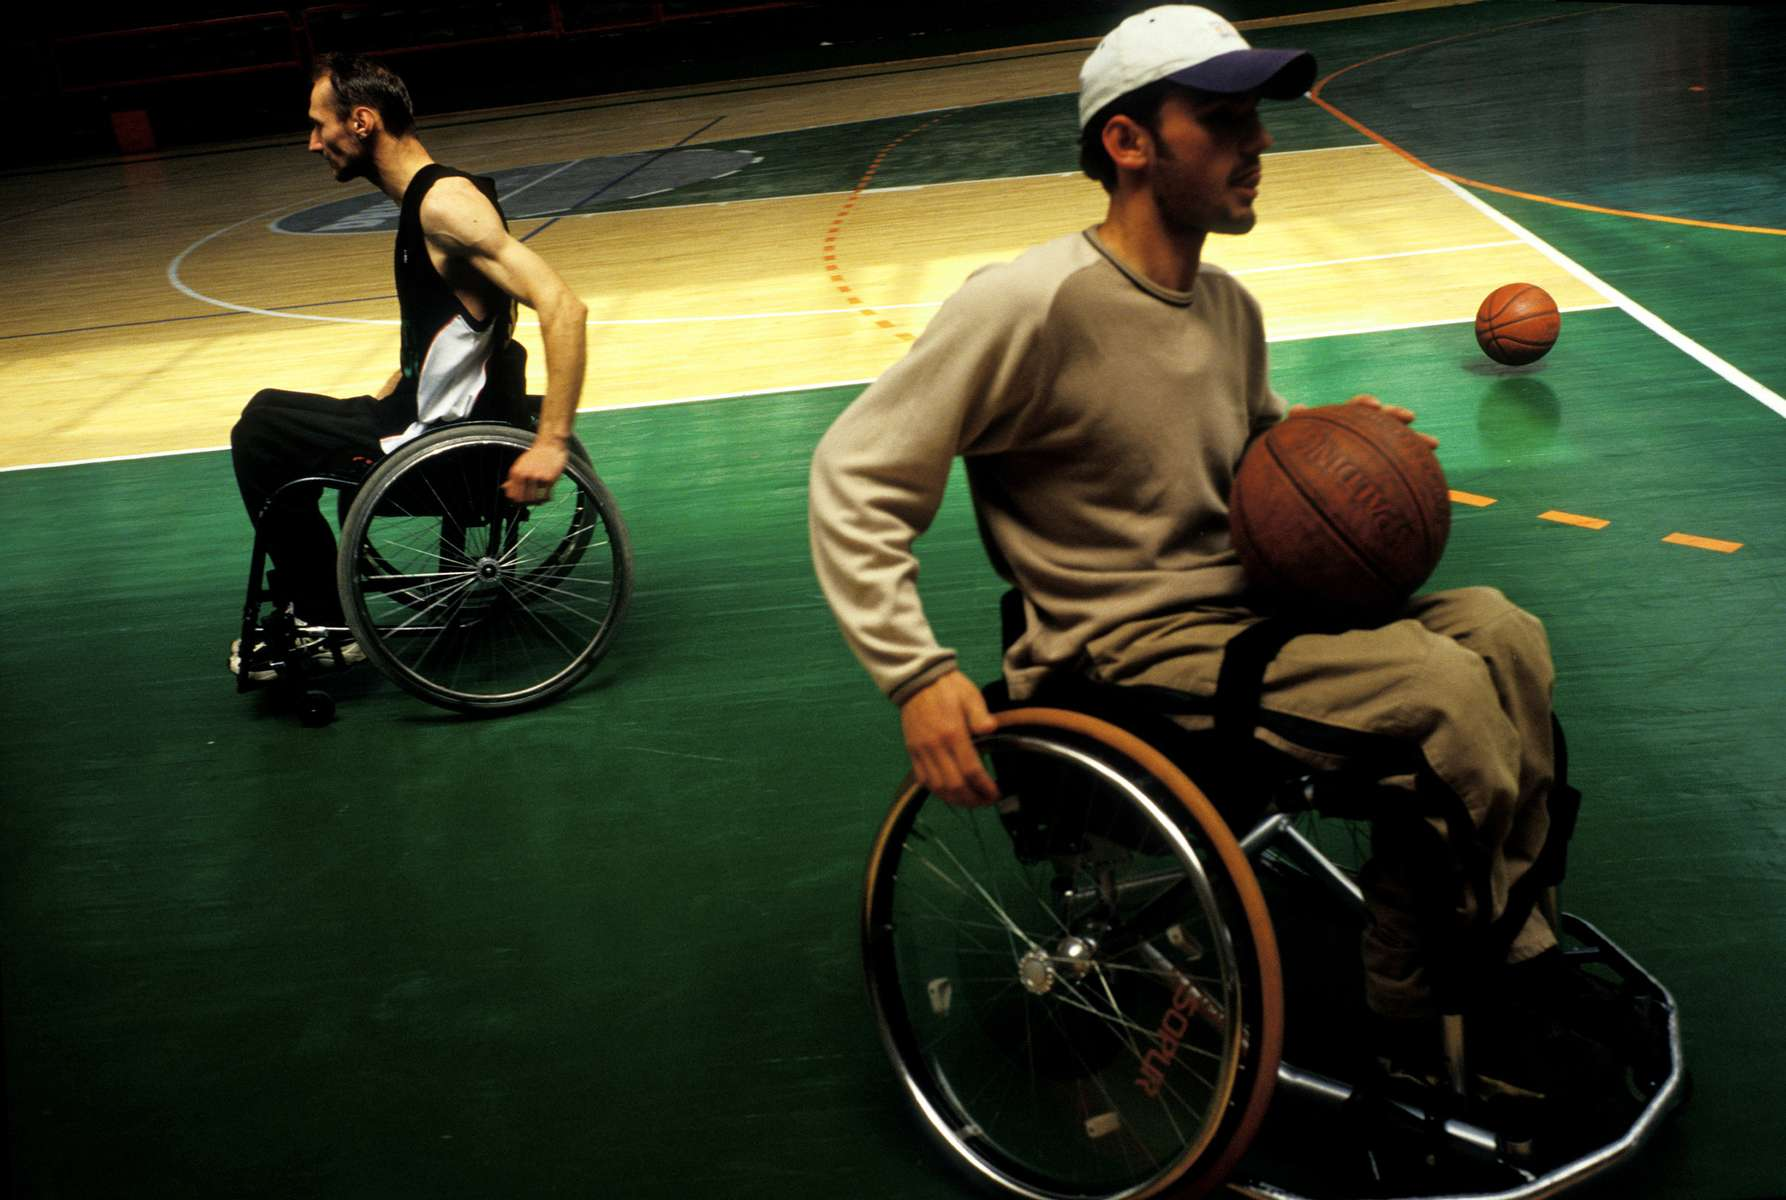 Members of the 3K Sarajevo wheelchair basketball team during a break from practice. Most of the players were wounded as civilians or as soldiers on the frontline during the 1992-95 war. The young man in the foreground was shot by a sniper when his parents let him go outside to celebrate his thirteenth birthday. Bosnia now has eight wheelchair basketball teams, made up almost entirely of young men wounded during the war.